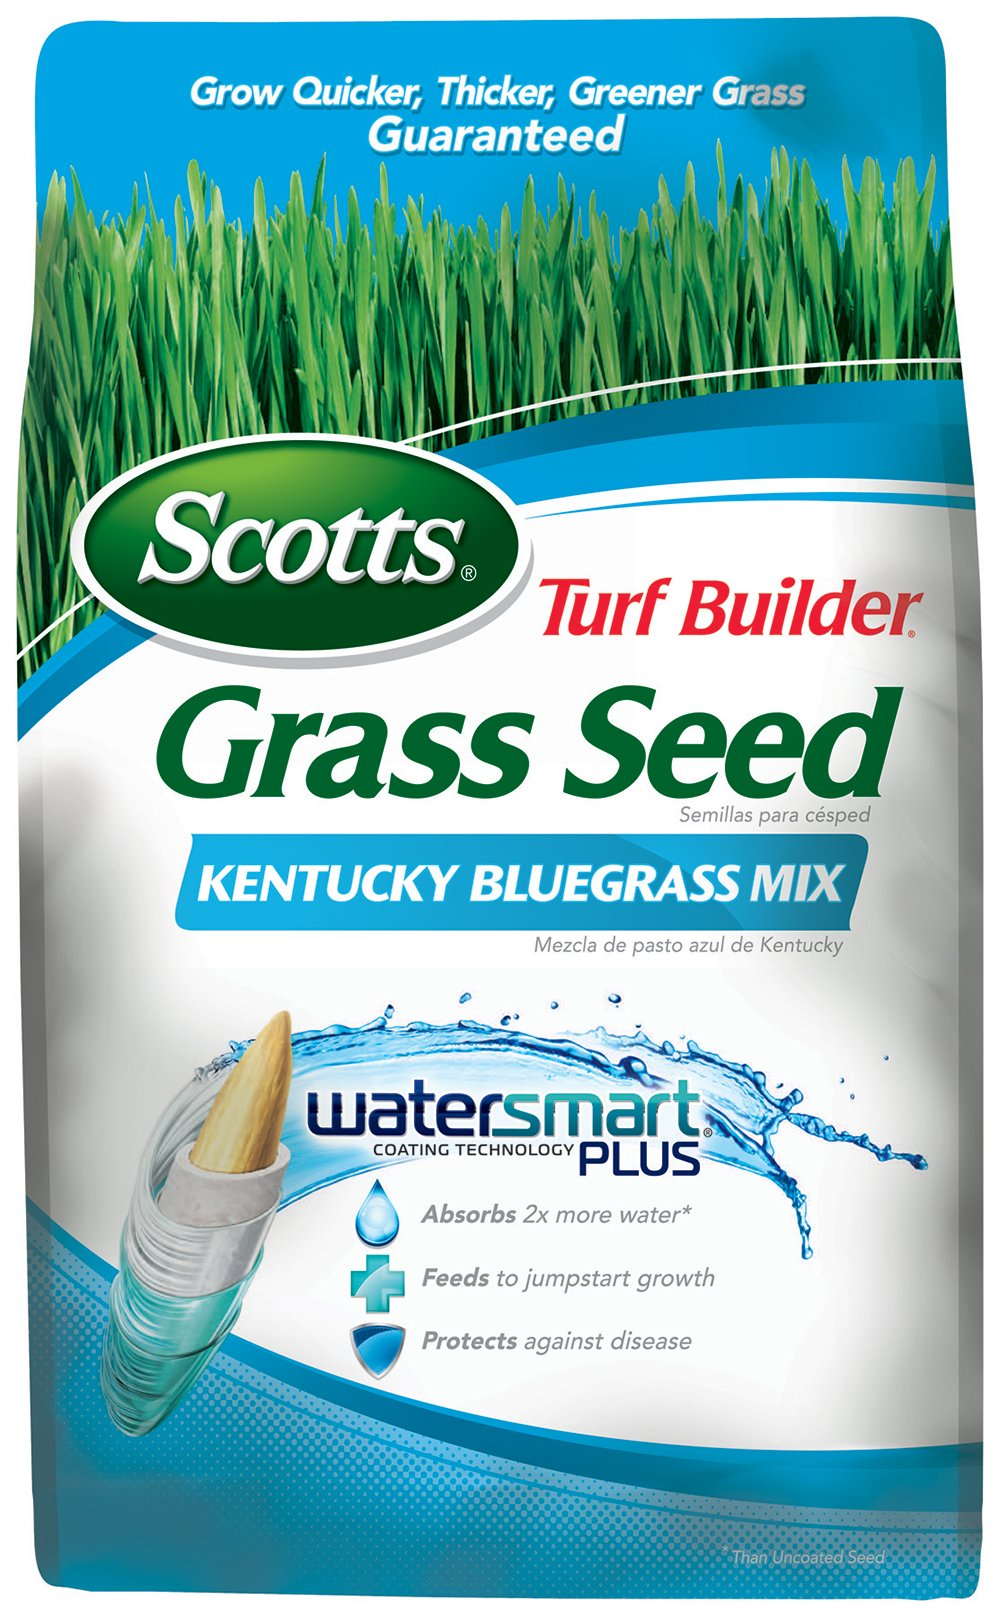 Scotts 18269 Turf Builder Kentucky Blue Mix Grass Seed (4 Pack), 7 lb